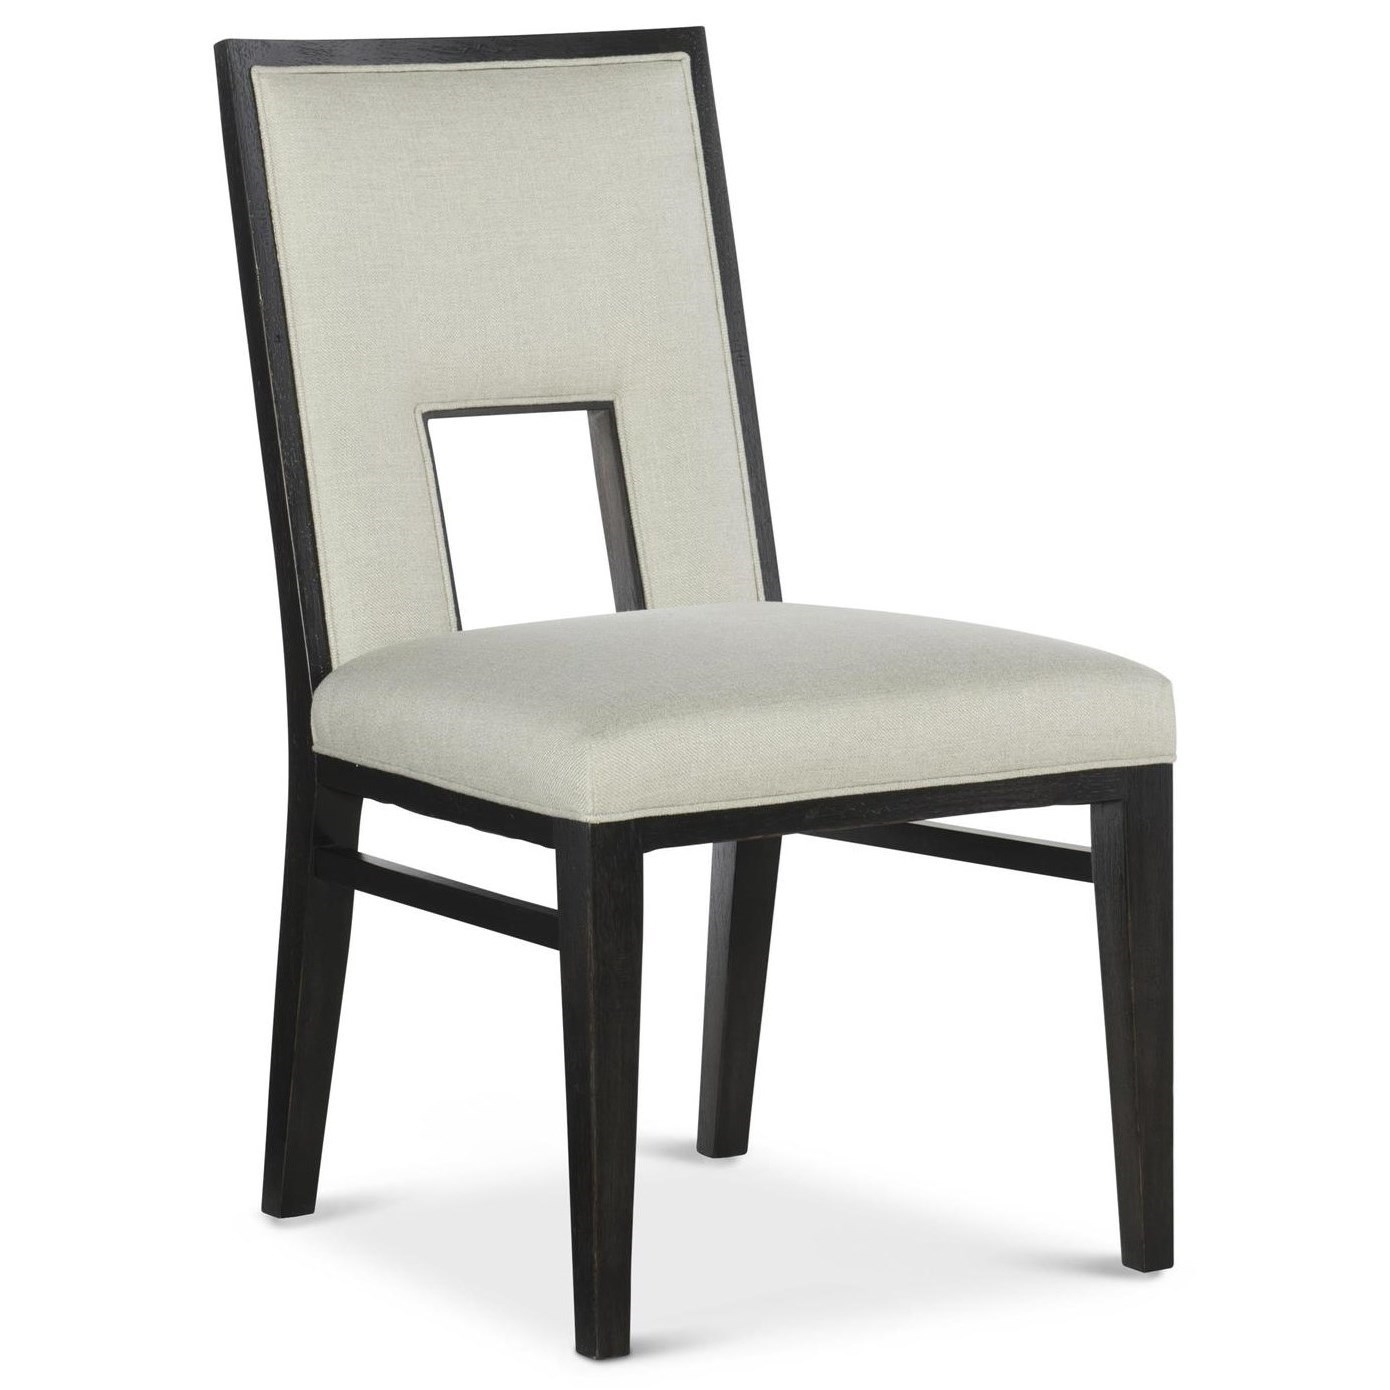 By Fine Furniture Design. Contemporary Dining Side Chair With Cut Out Back